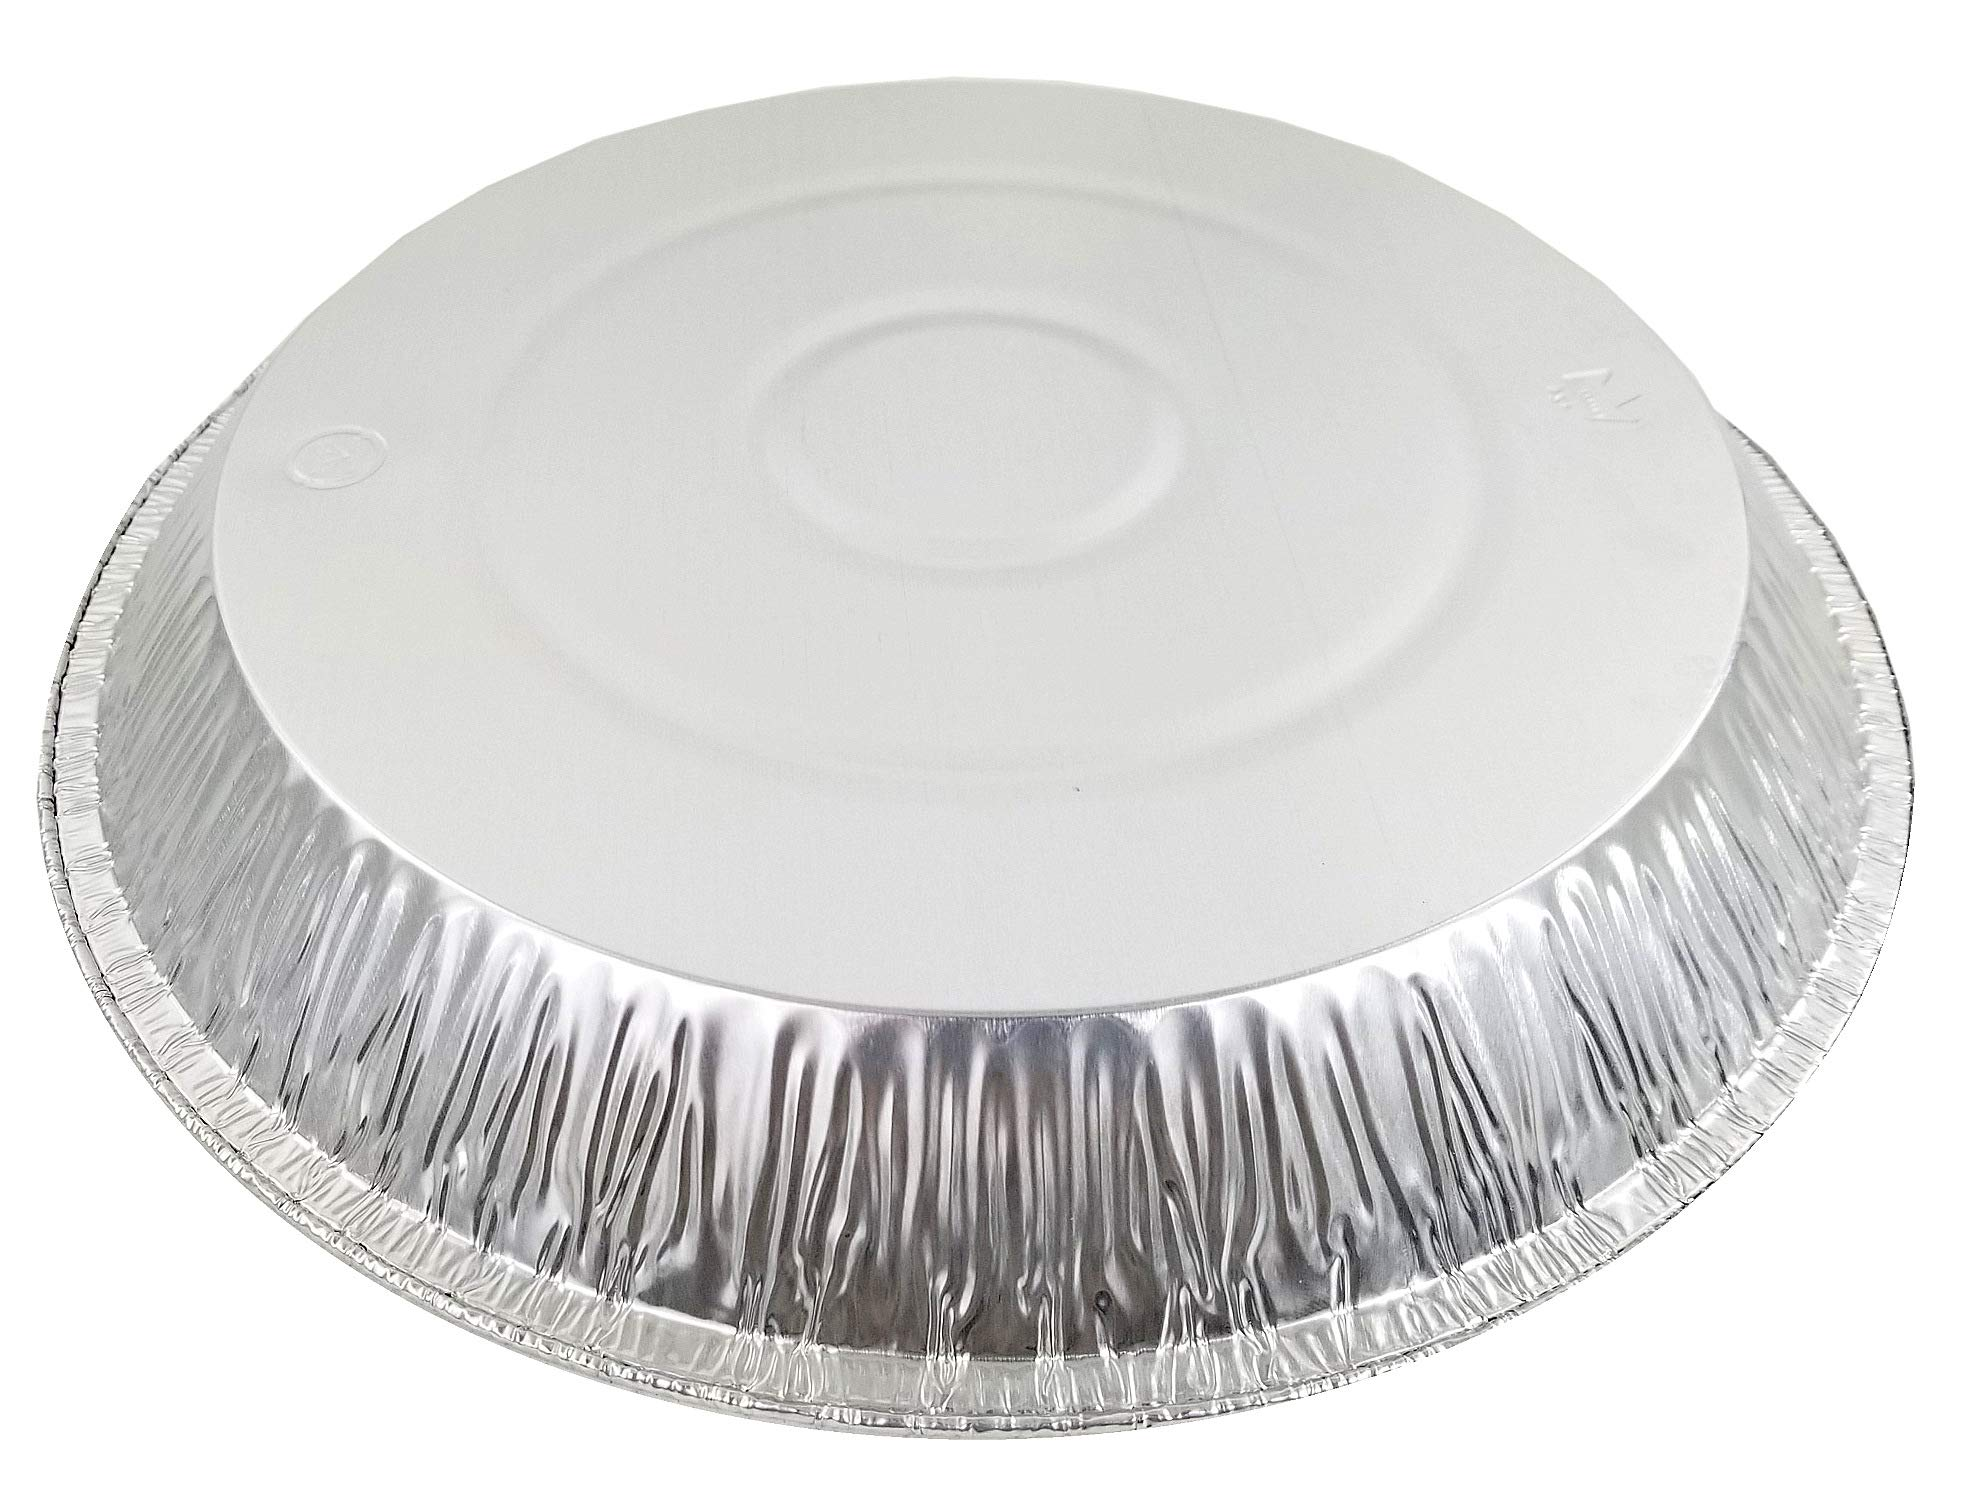 Pactogo 12'' Aluminum Foil Pie Pan Extra-Deep Disposable Tin Plates (Pack of 500) by PACTOGO (Image #5)